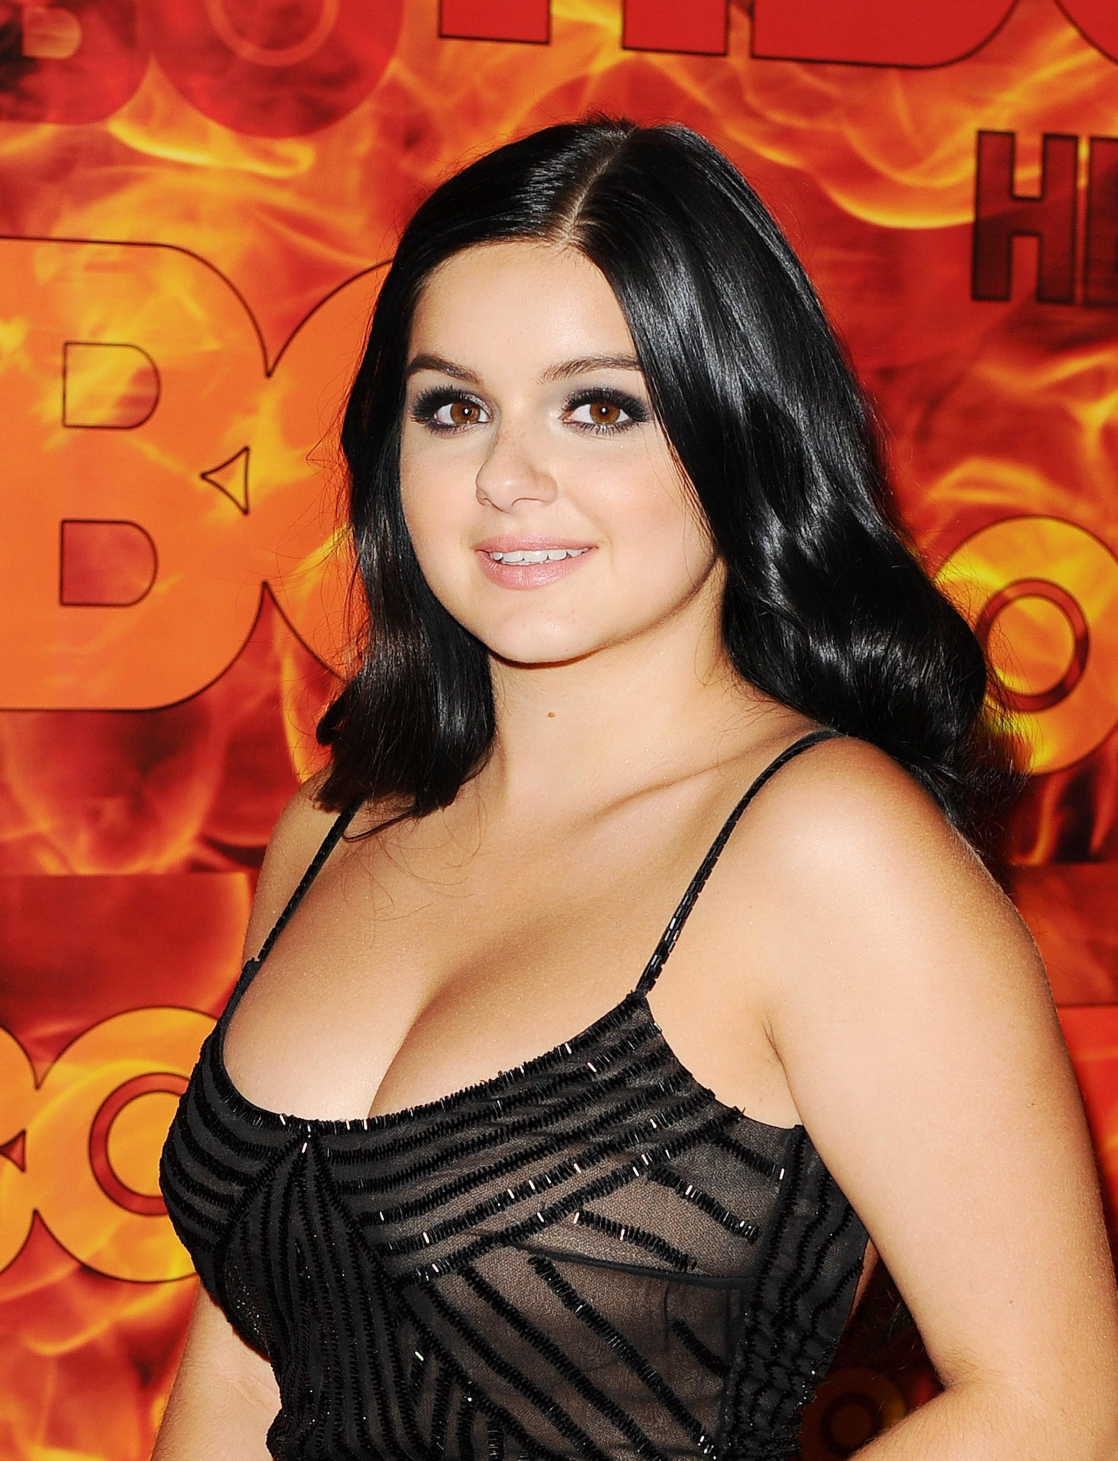 ariel-winter-hot-in-lingerie